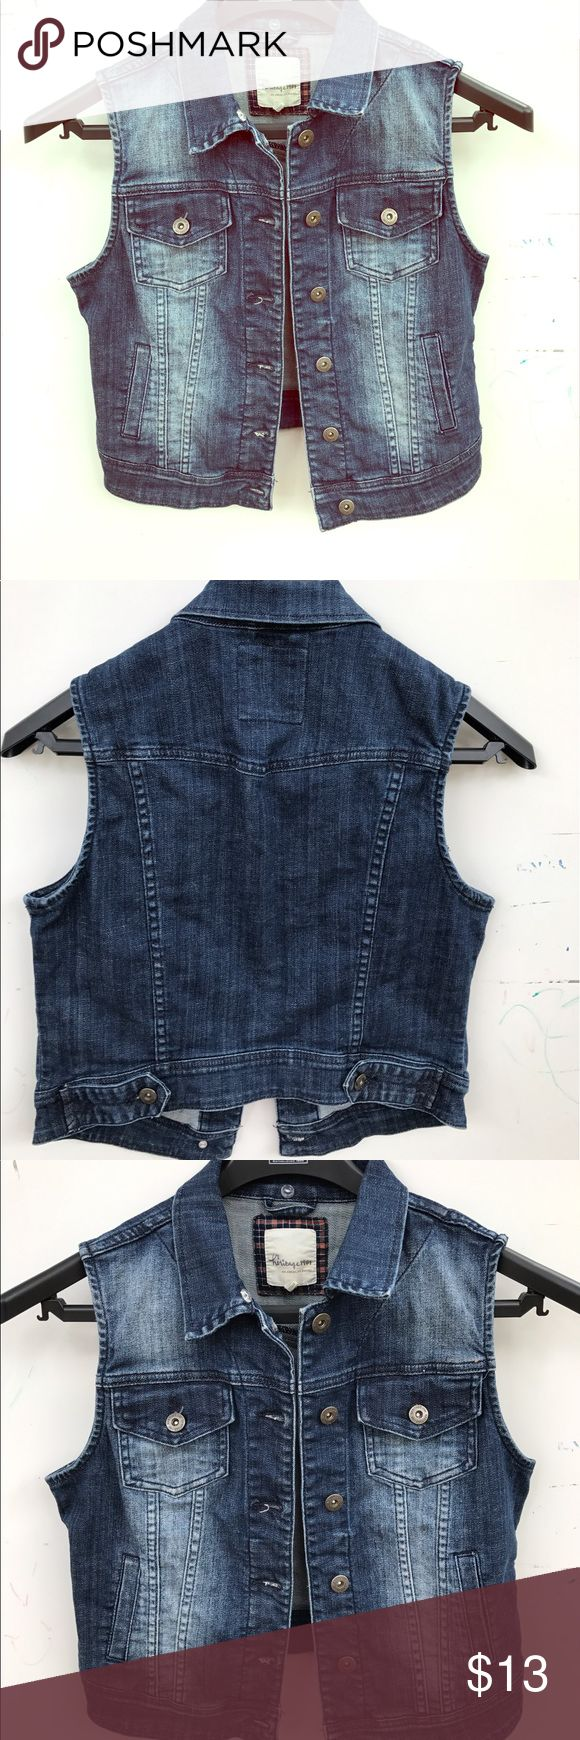 Sleeveless Jean jacket Sleeveless Jean jacket in size M! Fits a Small! Jackets & Coats Jean Jackets